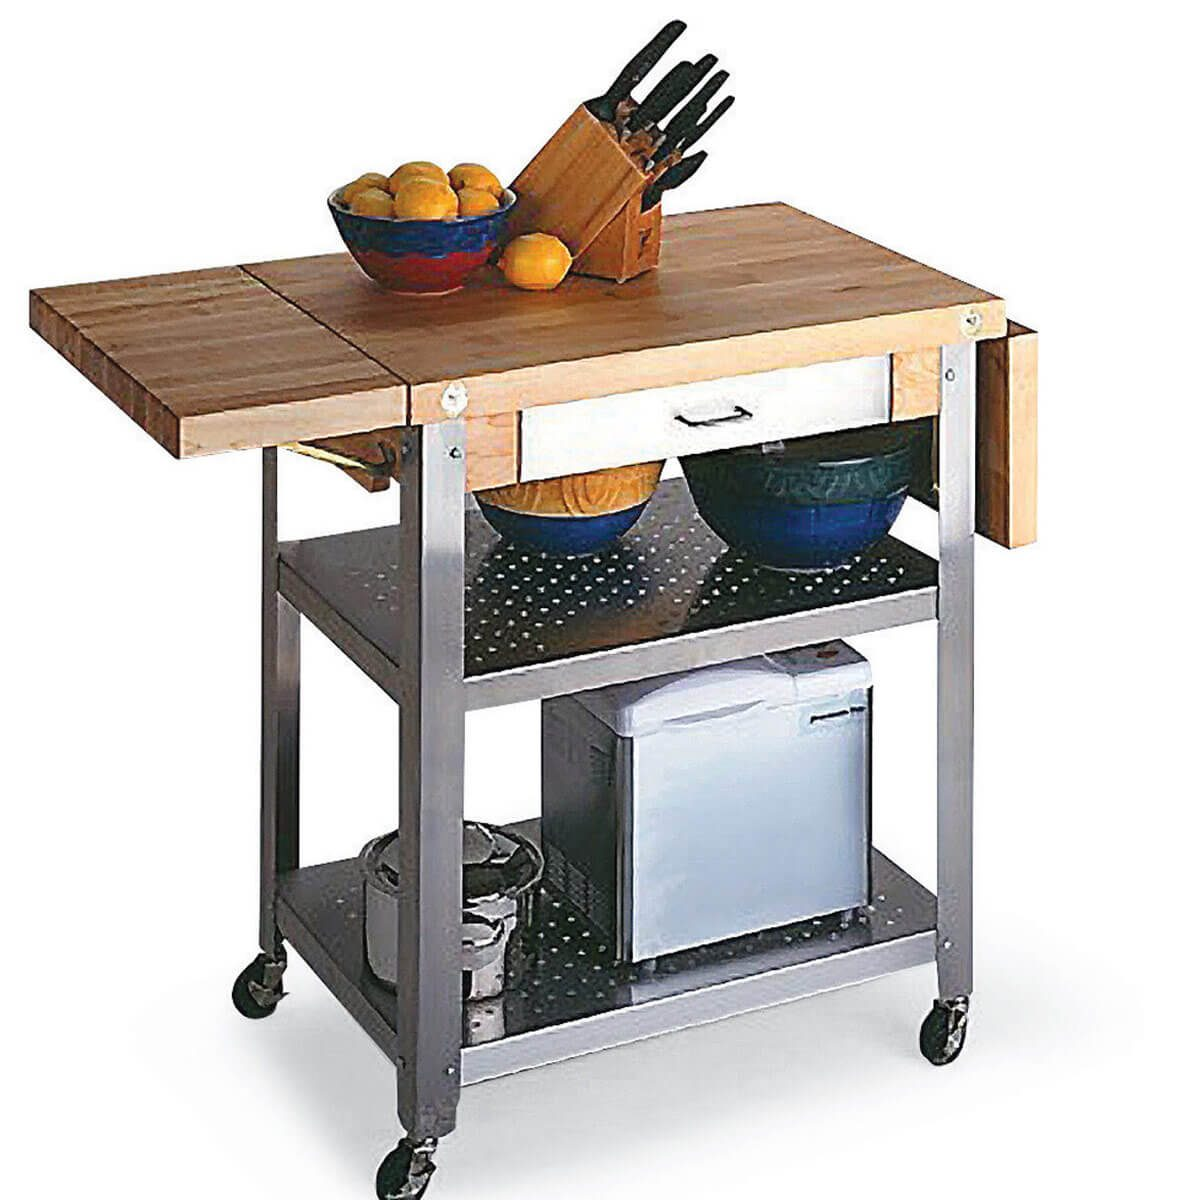 fh05oct_462_50_m04 mobile kitchen counter space island